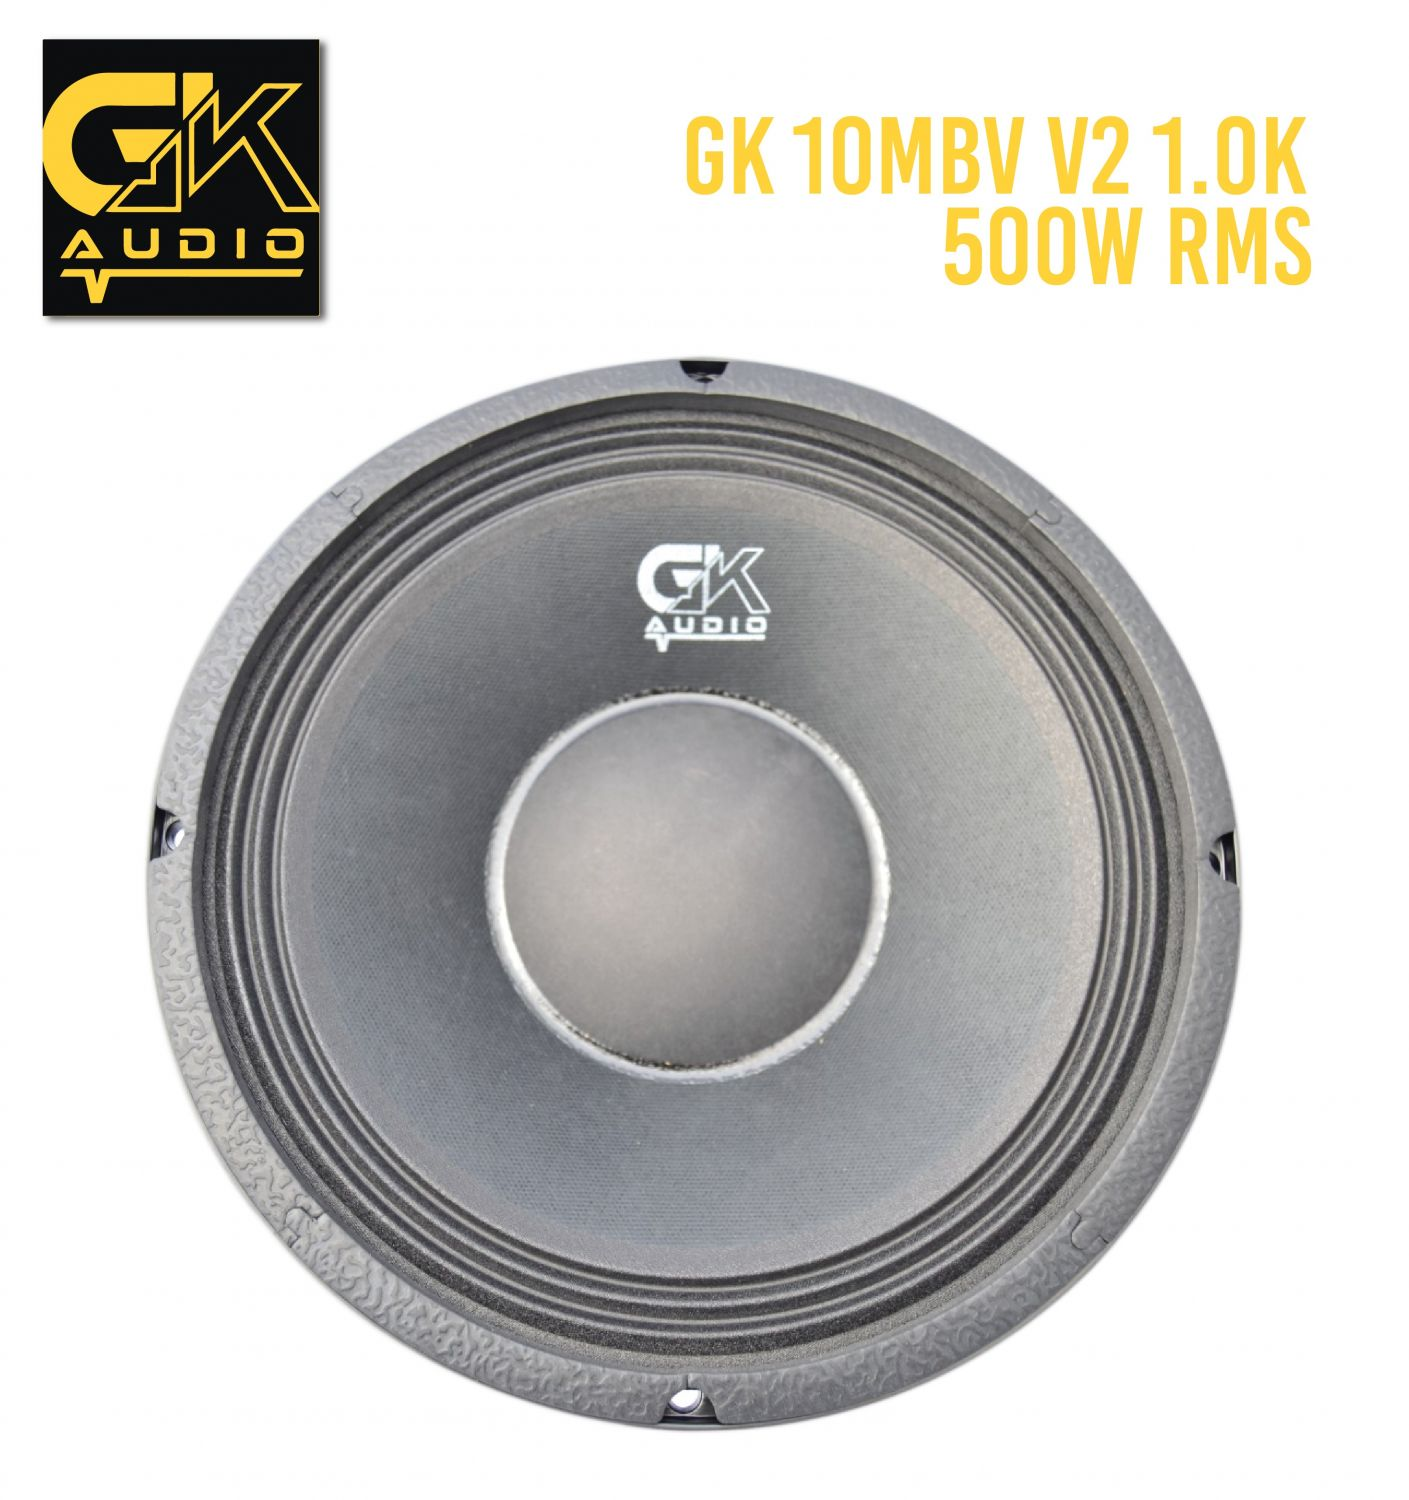 GK Audio 10MBV V2 1.0K